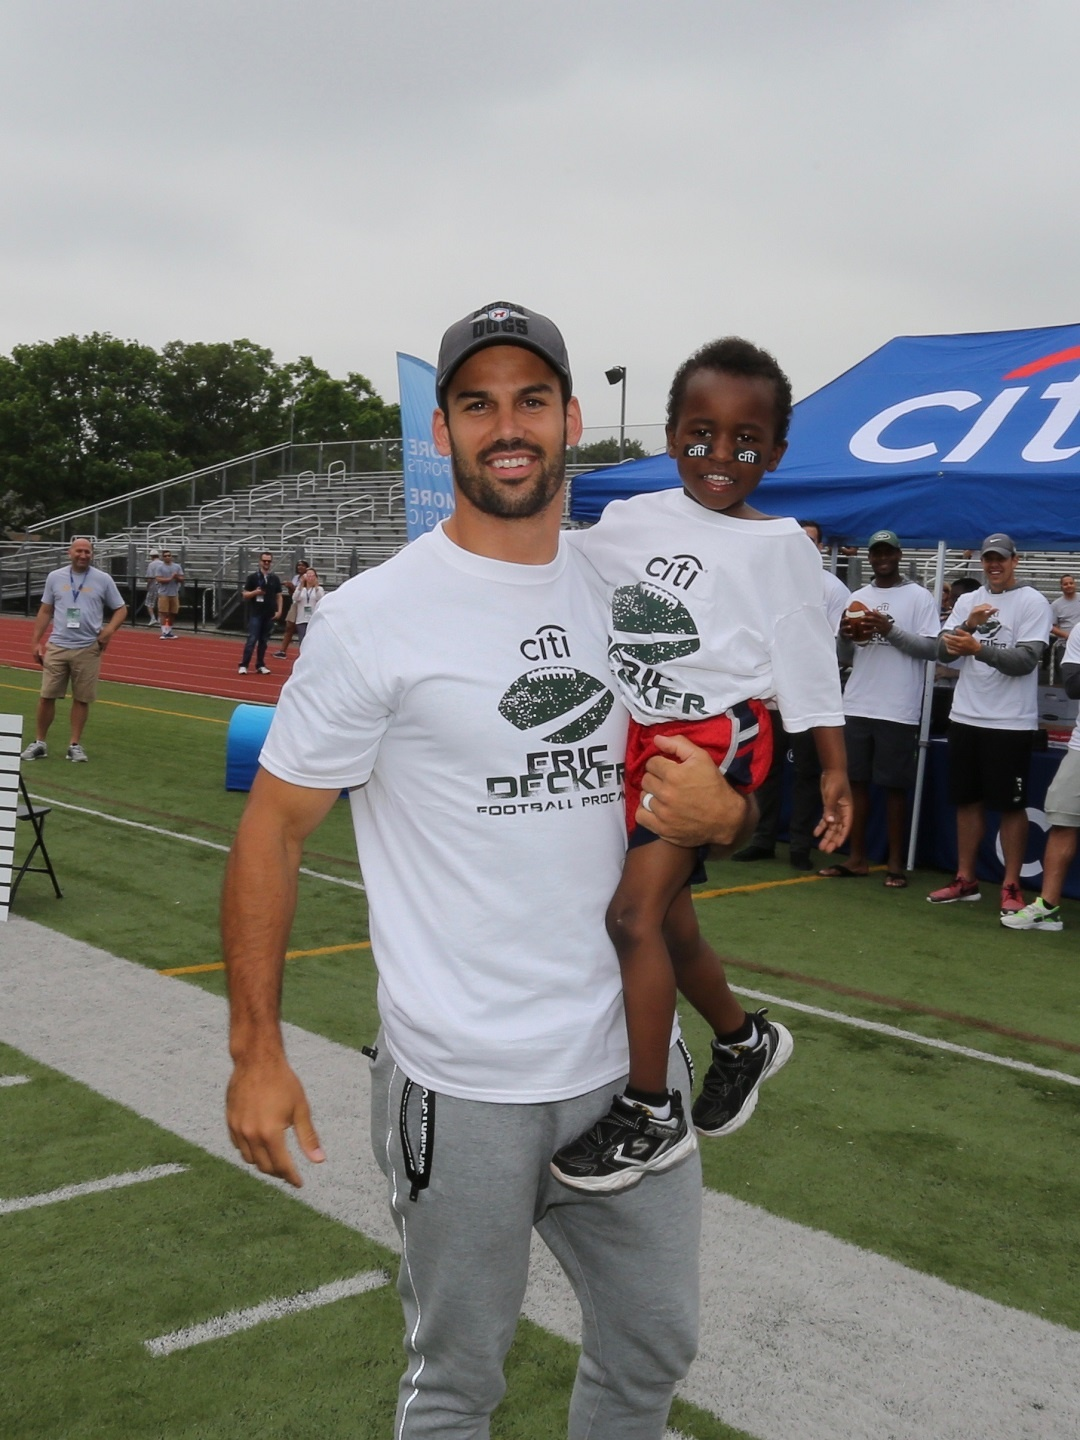 Image Media for Citi - ProCamps Partnership